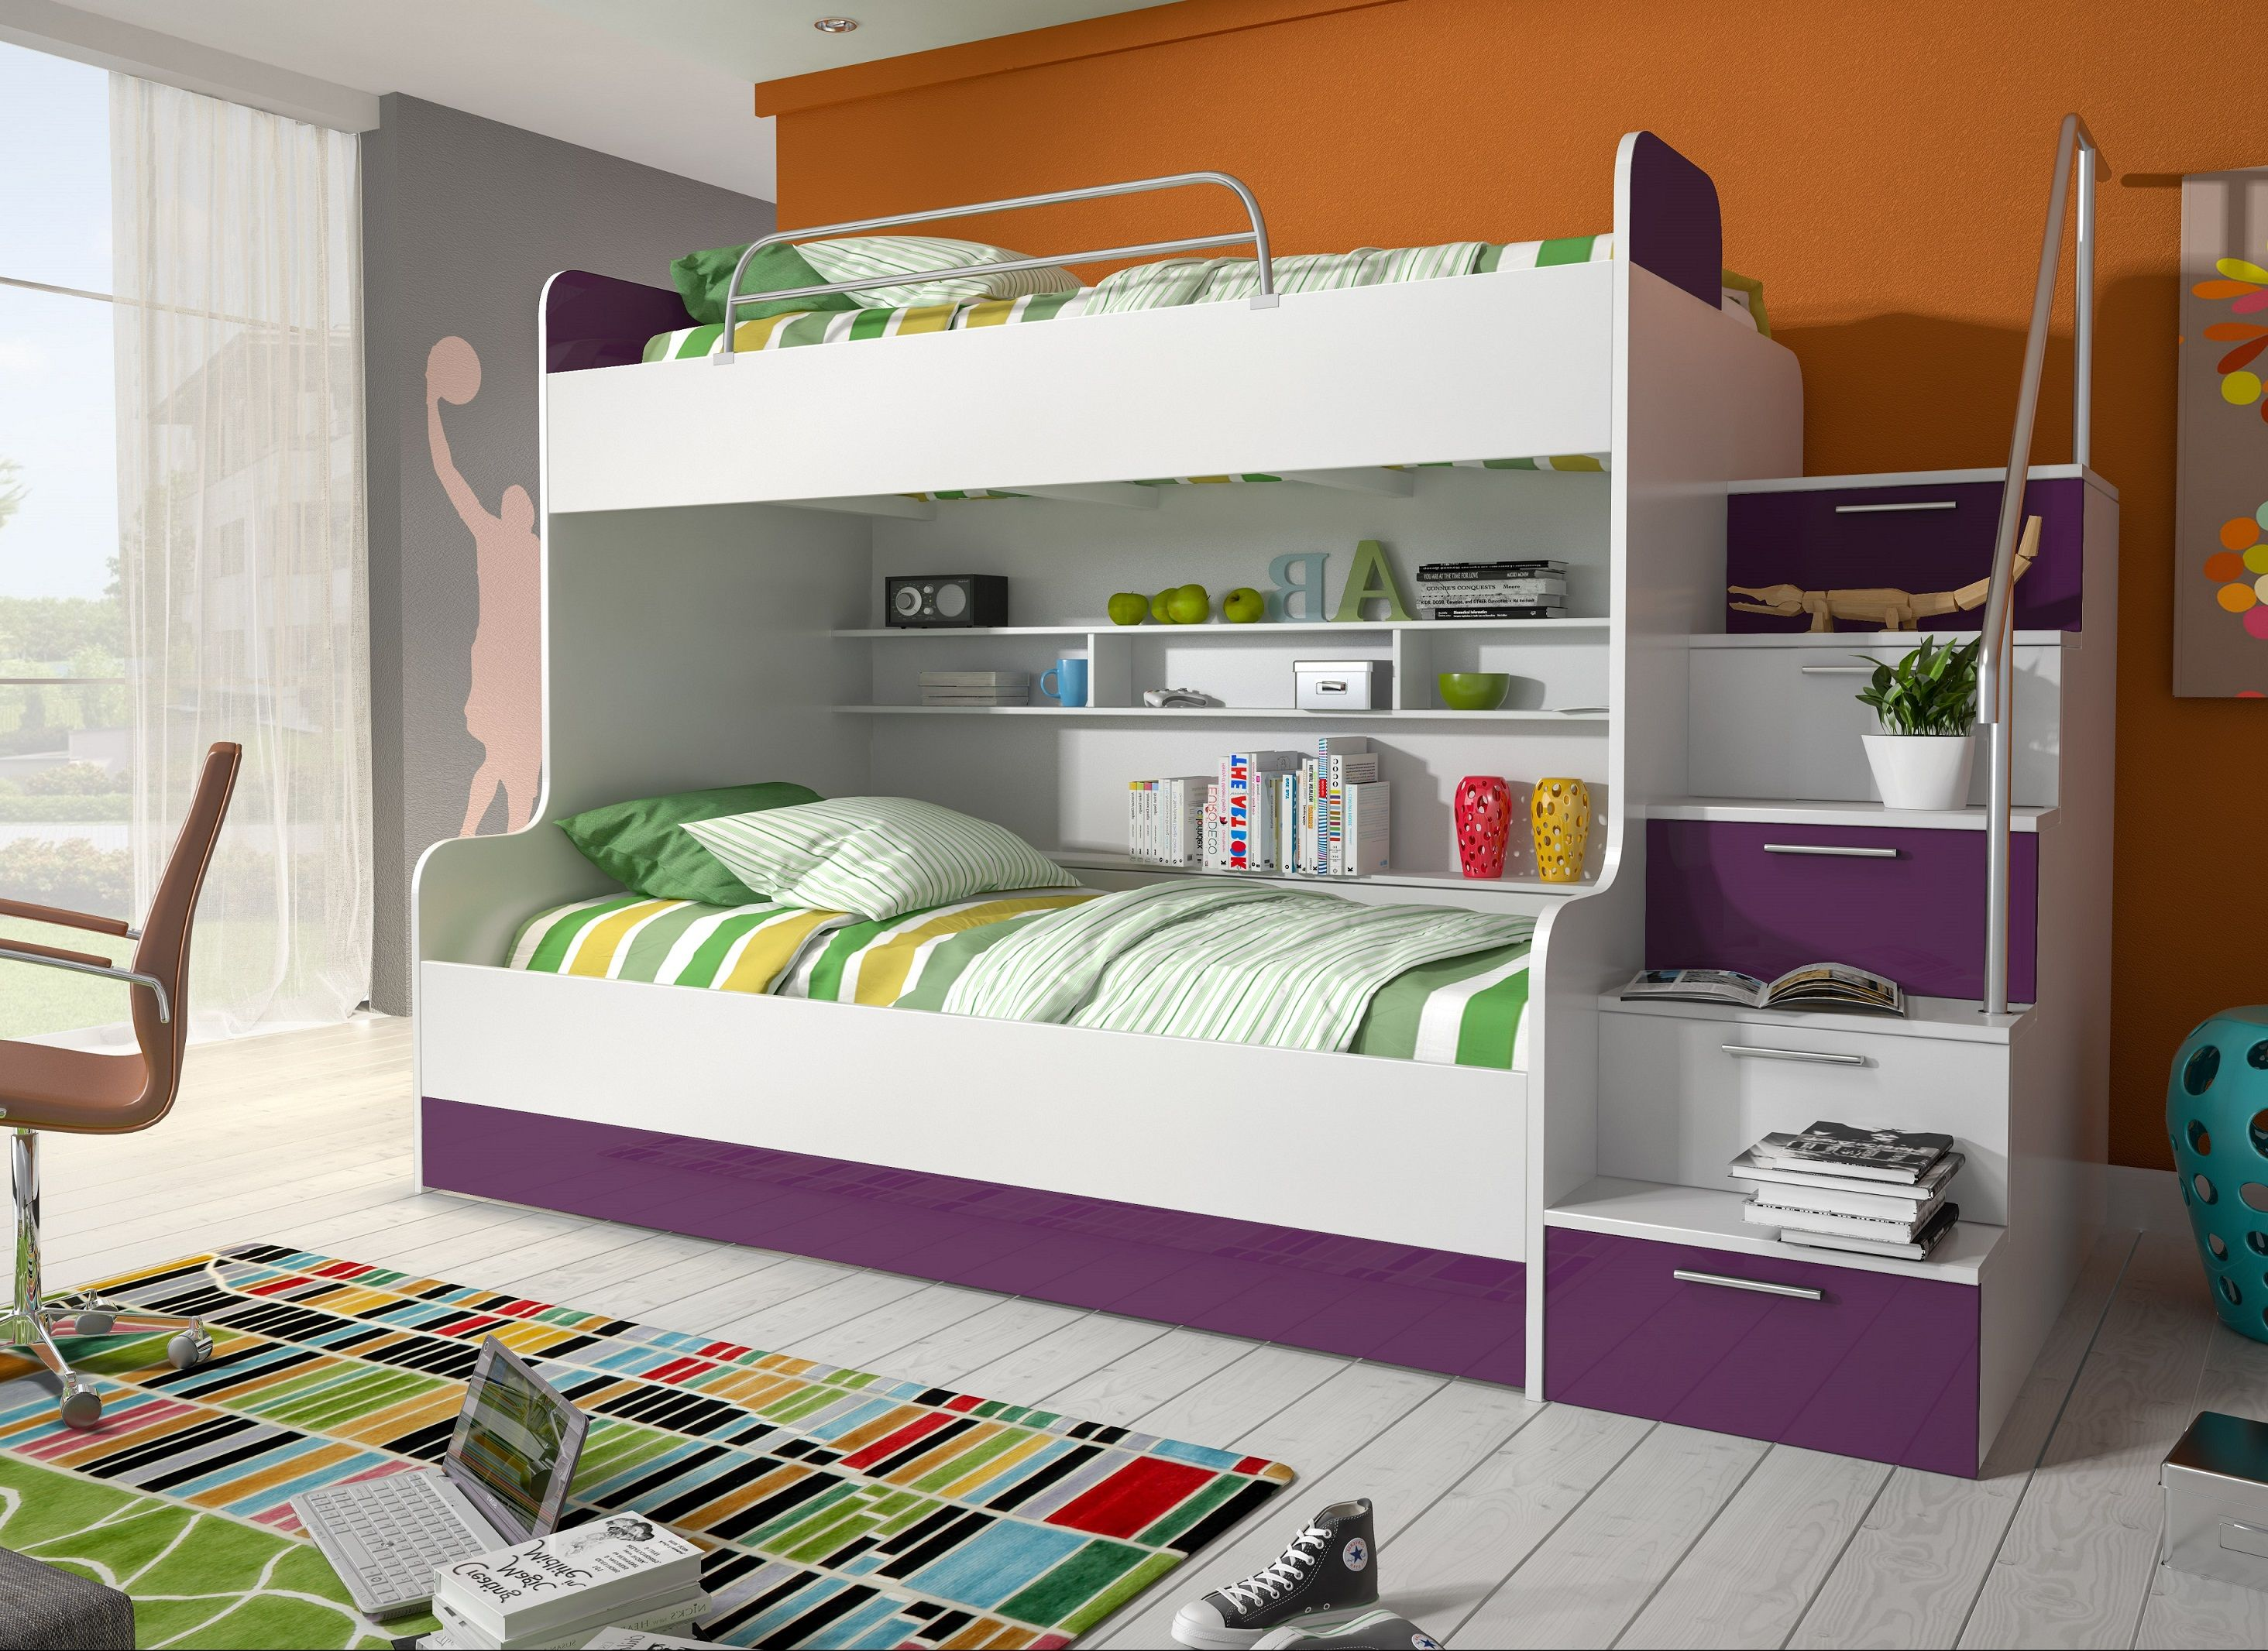 etagenbett kinderbett lila hochglanz lila wei etagenbett kinder weiss etagen und. Black Bedroom Furniture Sets. Home Design Ideas